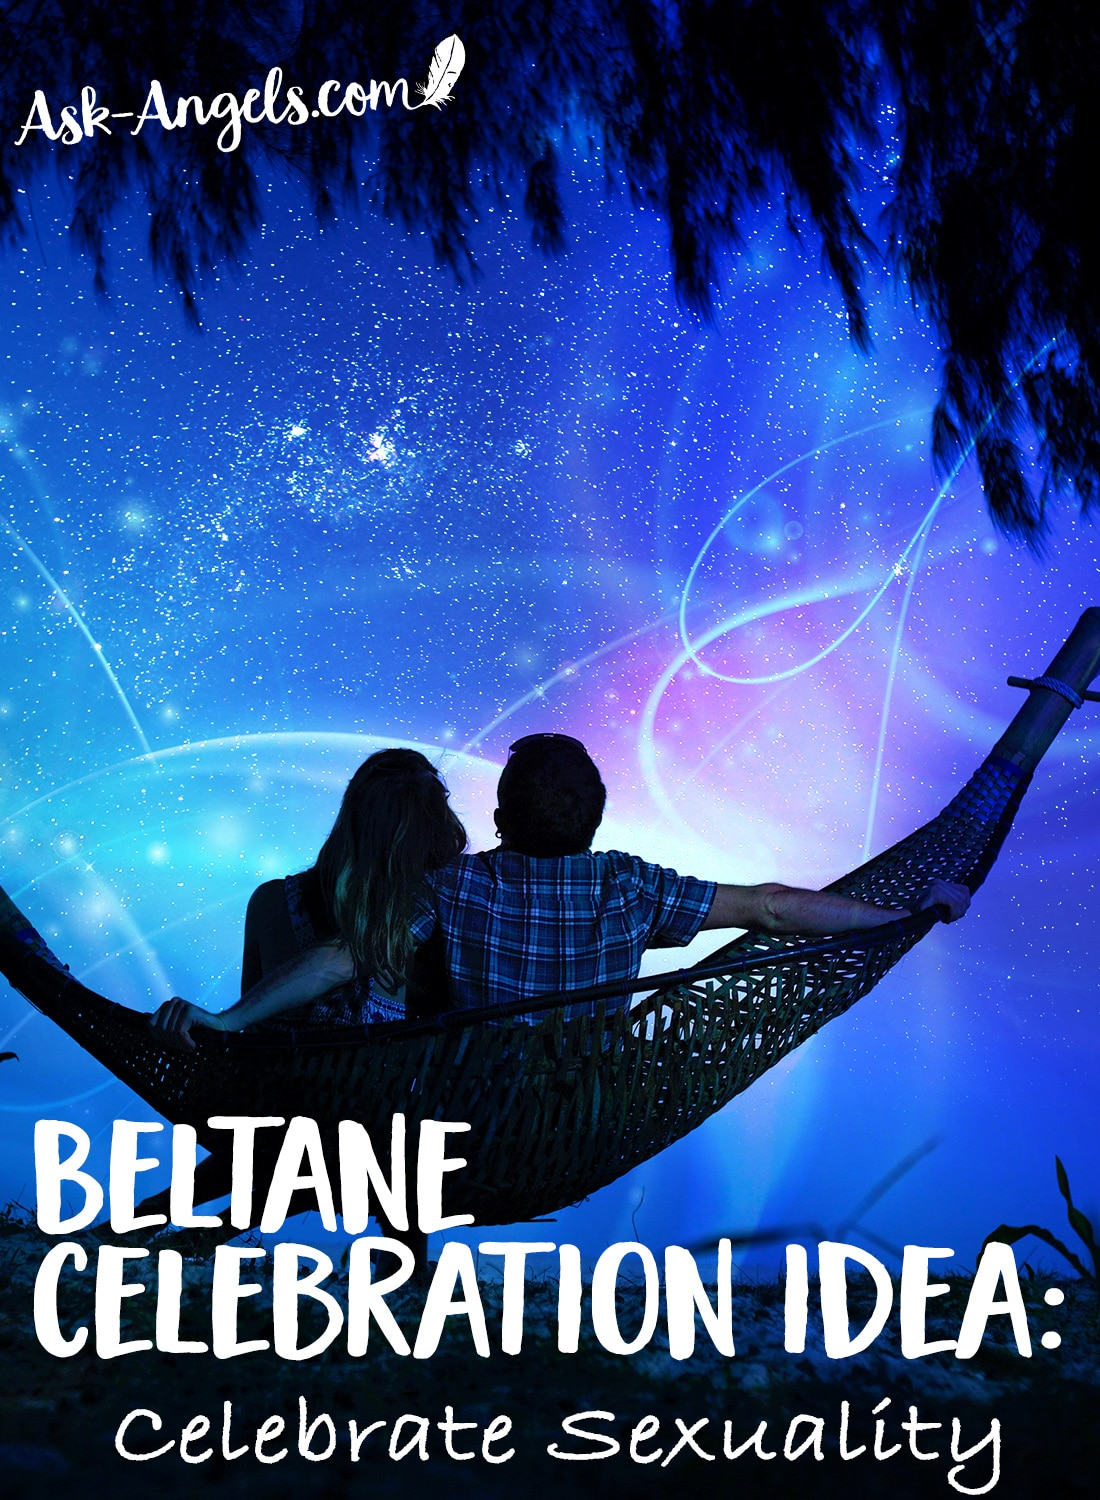 Beltane Celebration Idea - Celebrate Your Sexuality